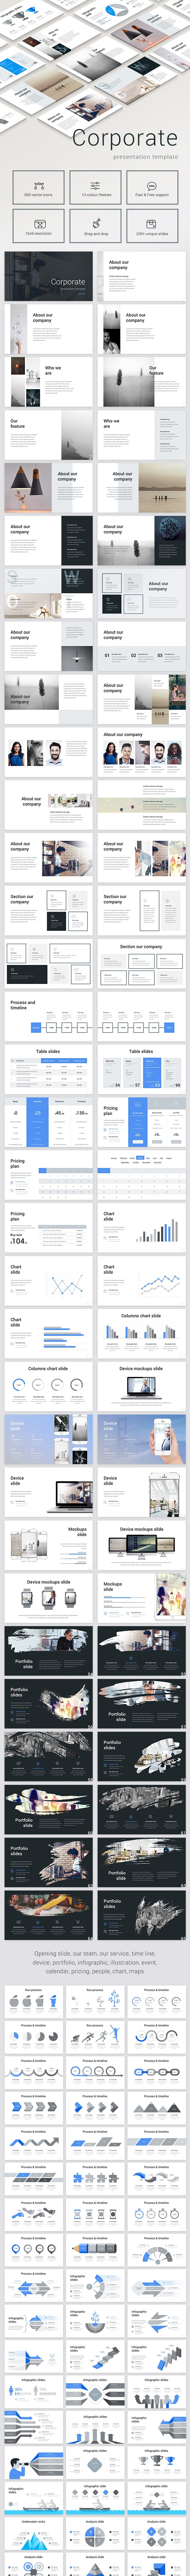 Corporate Business - Business PowerPoint Templates